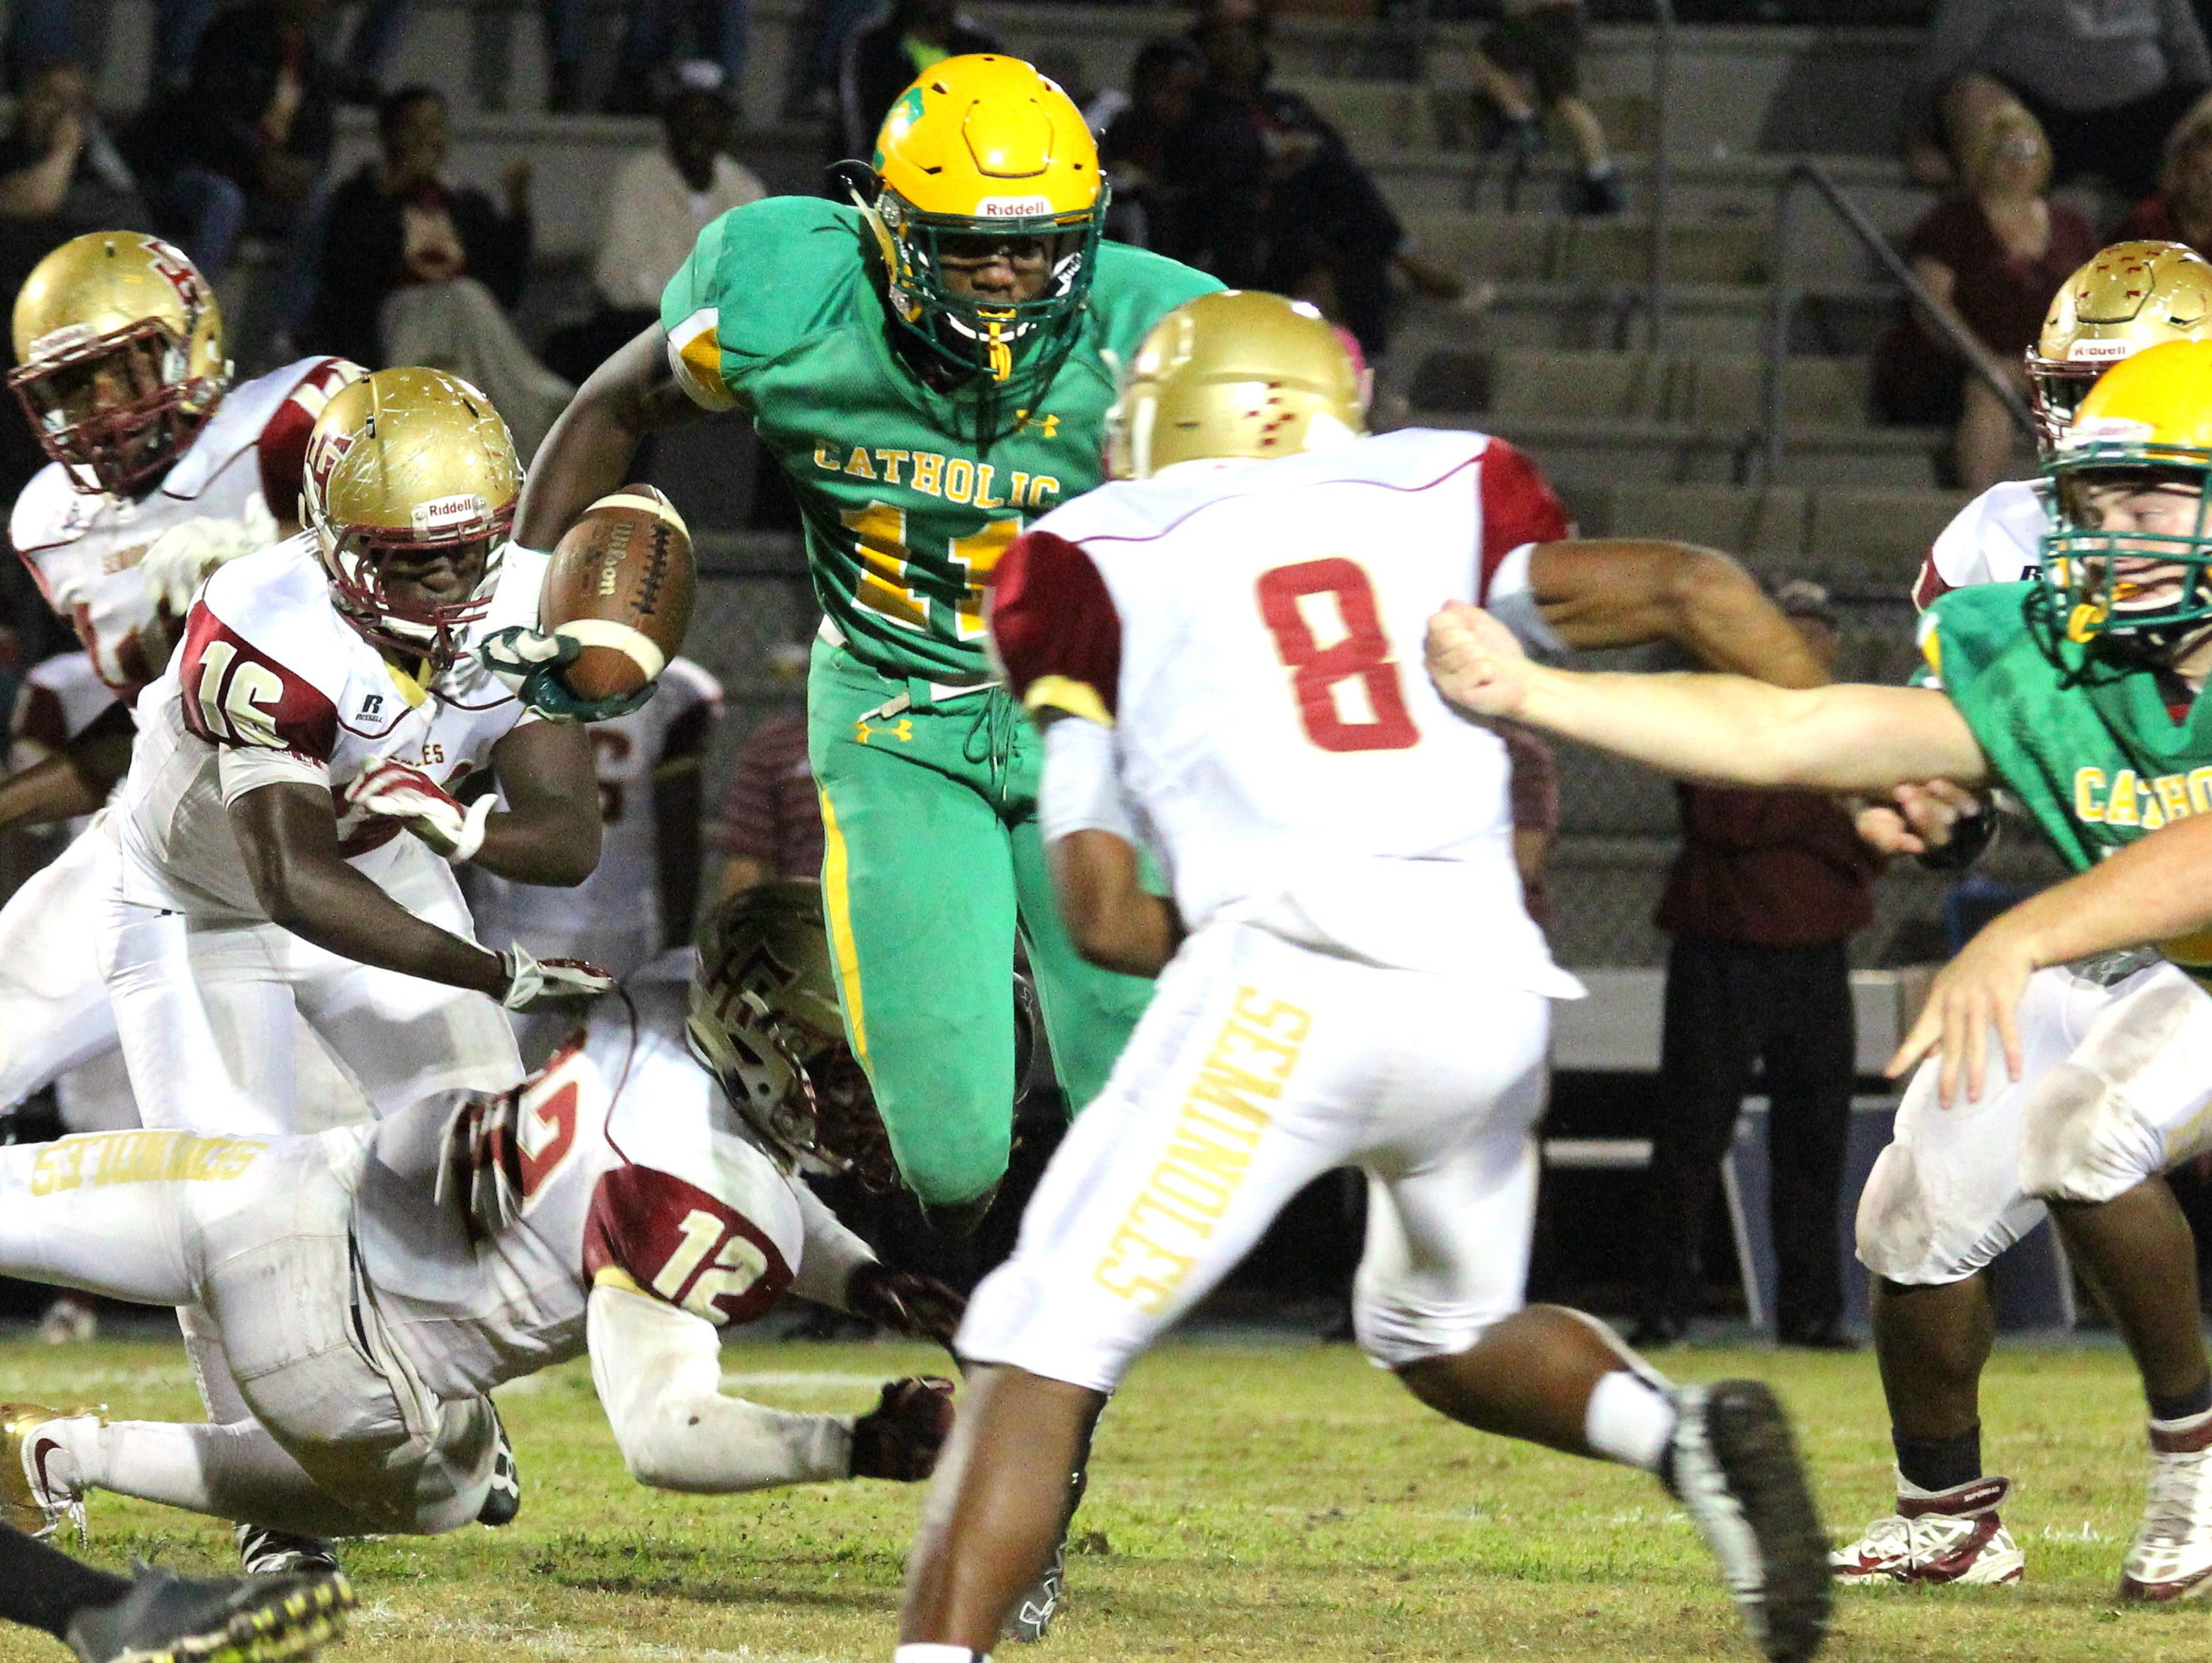 Catholic's Kerrick Teamer carries the ball in the second half.